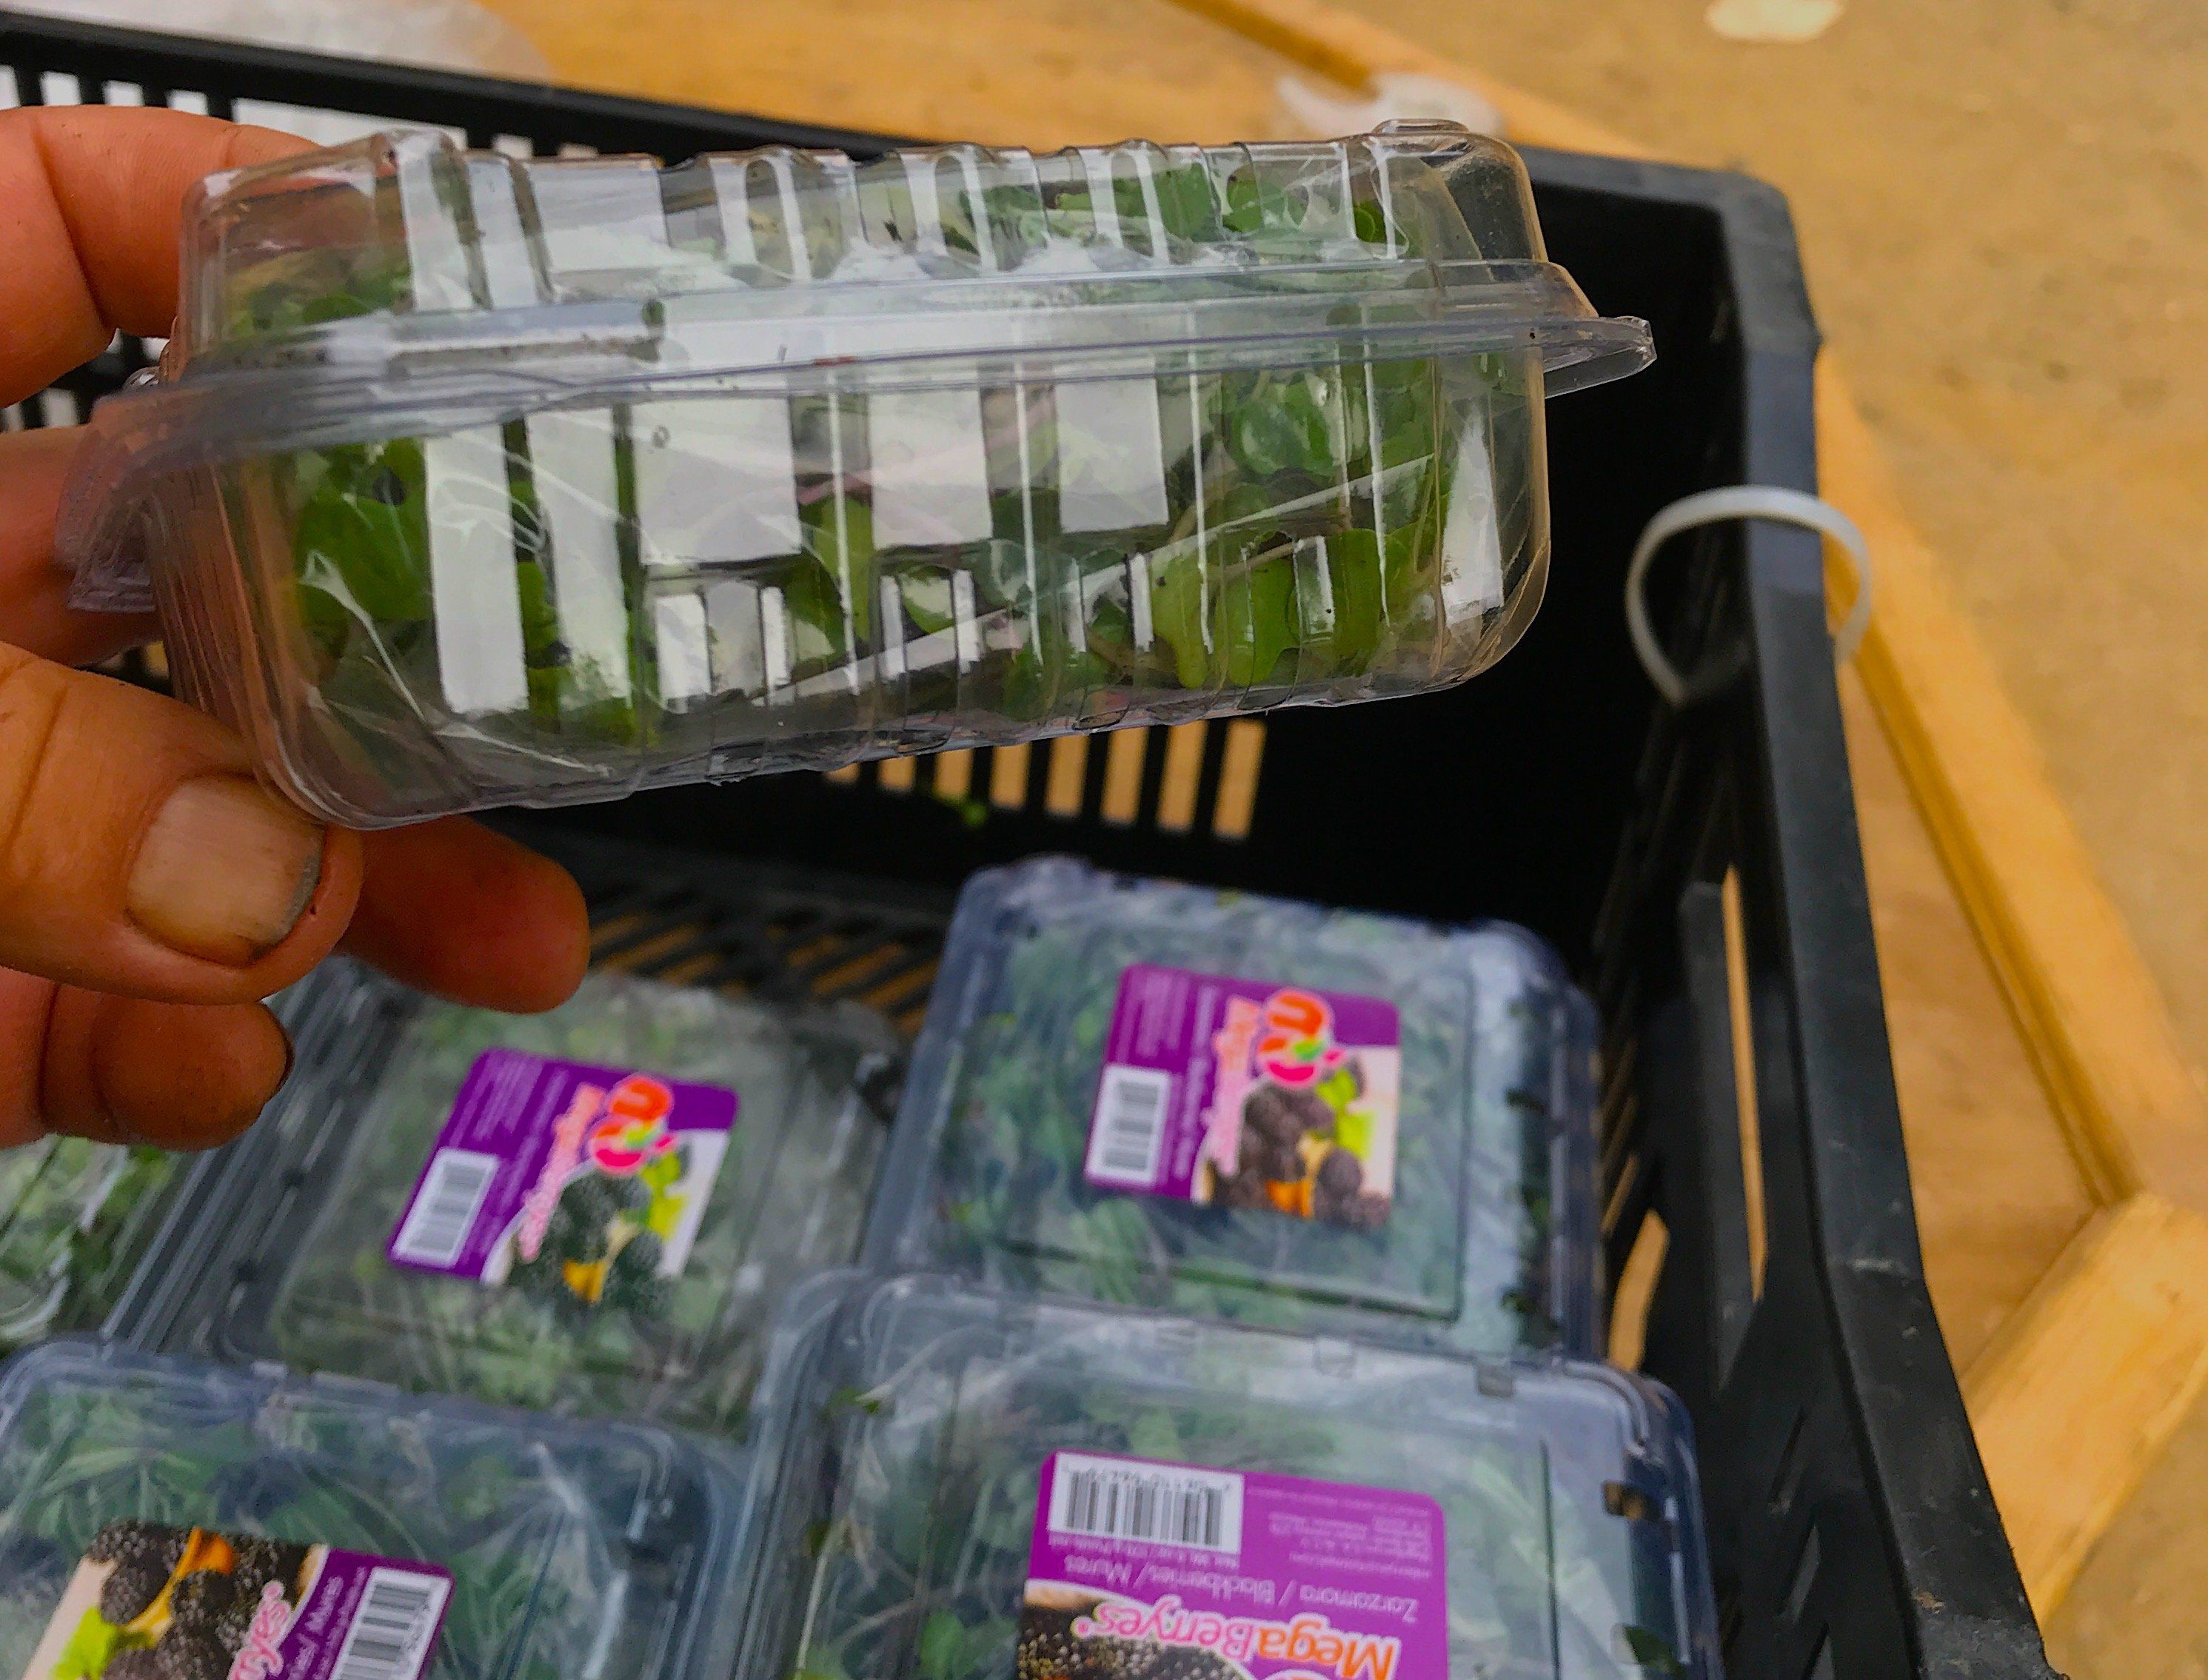 Next Happening: Week 10: Farewell to Leafy Greens, Hello Micro-Greens